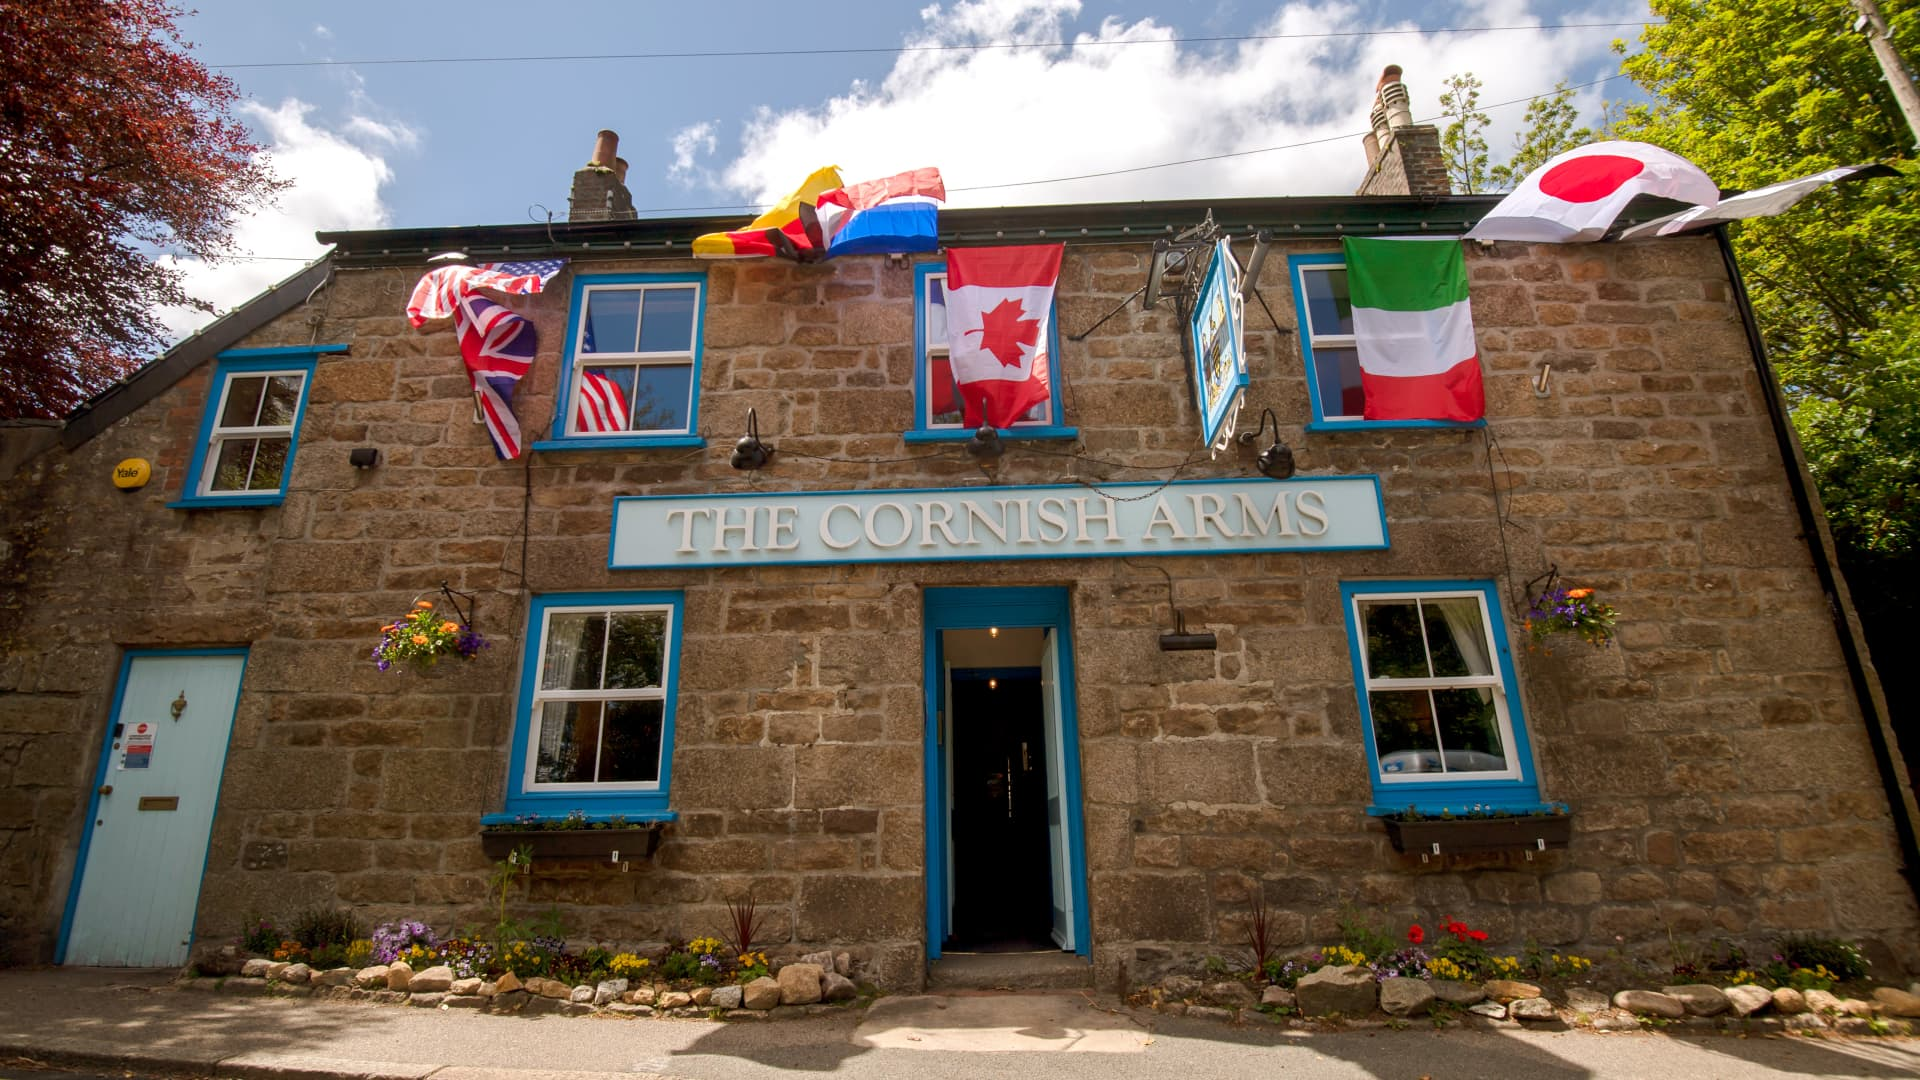 The Cornish Arms public house decorated with the flags of the G-7 countries near the venue for the upcoming Group of Seven leaders summit.